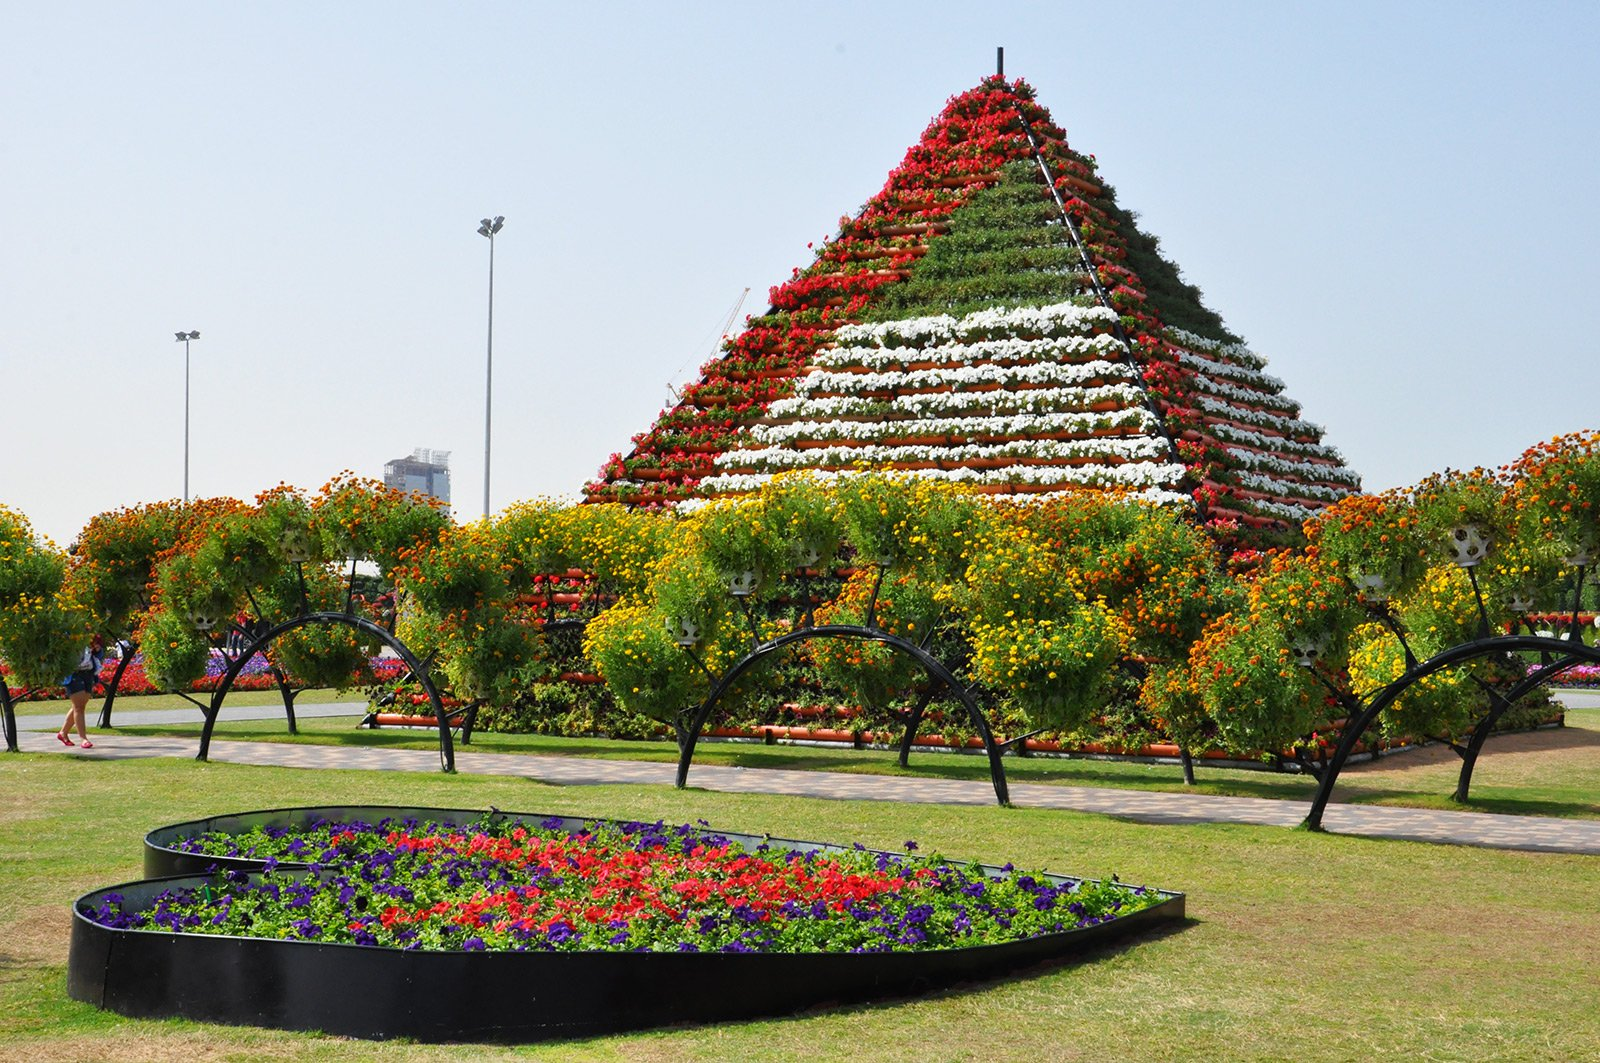 How to see a 10-meter Flower Pyramid in Dubai